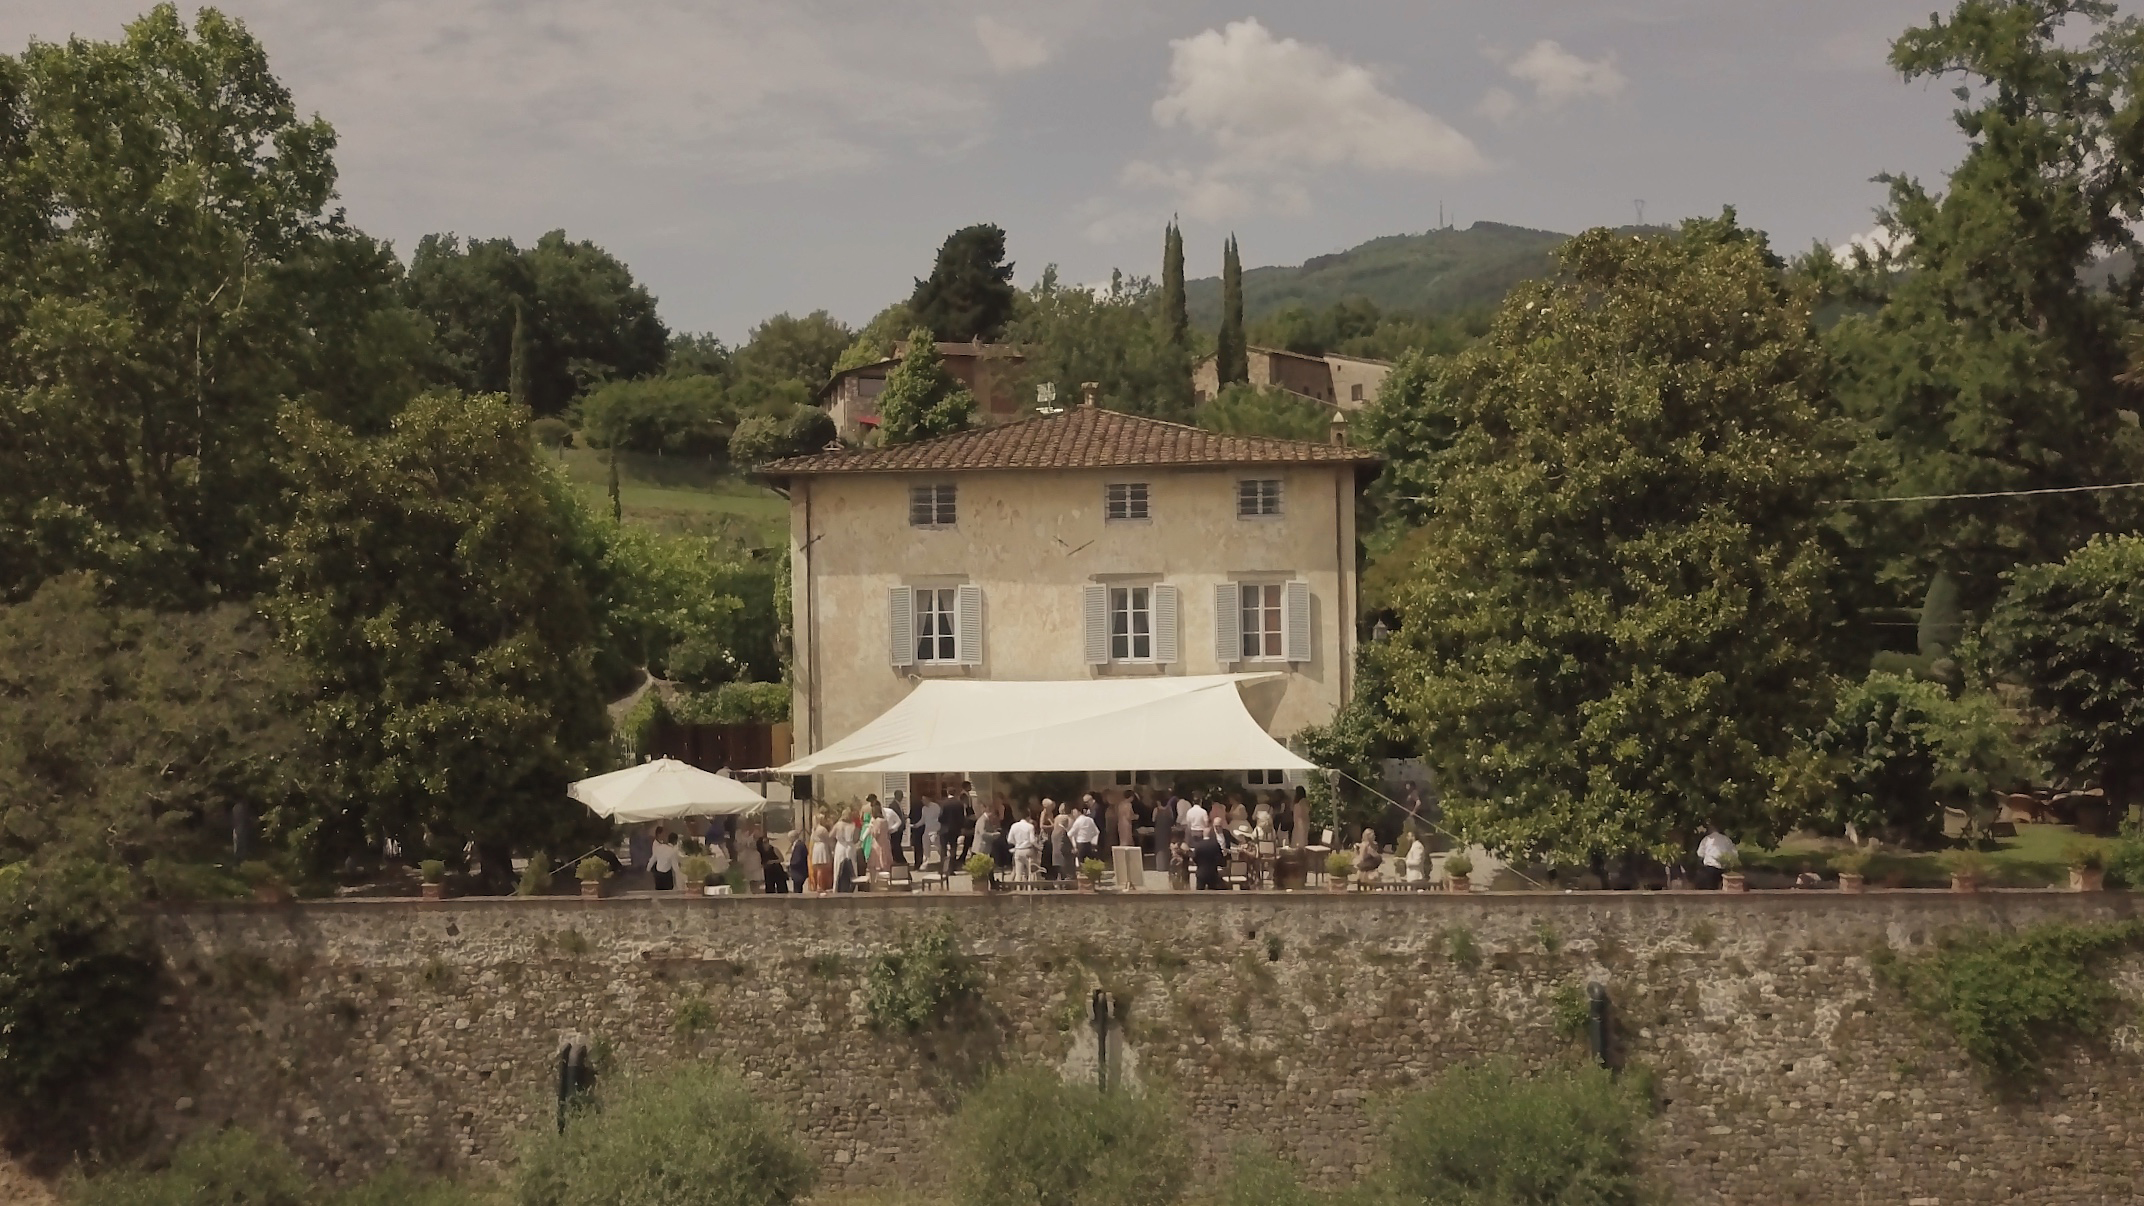 Drone footage from the wedding film at Fattoria Mansi Bernardini.